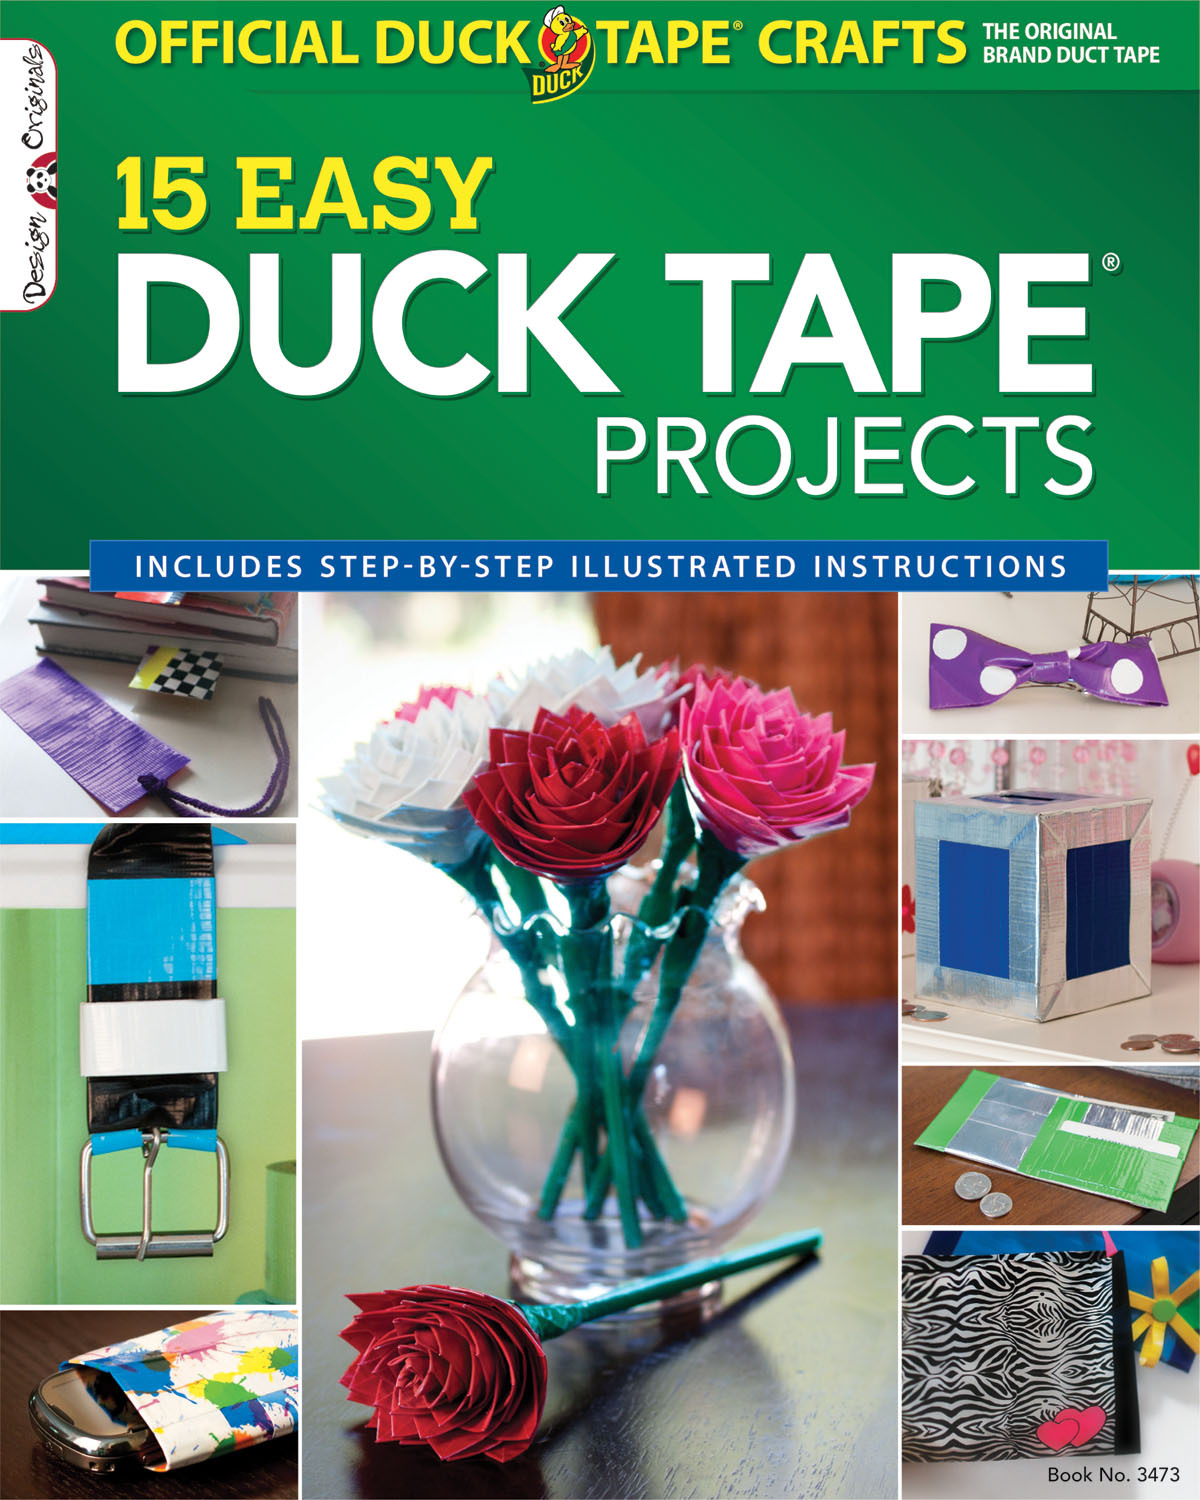 easy duct tape projects Make diy crafts using duck tape® brand duct tape learn how to make a classic duct tape wallet, or browse hundreds of simple crafts for kids and advanced.